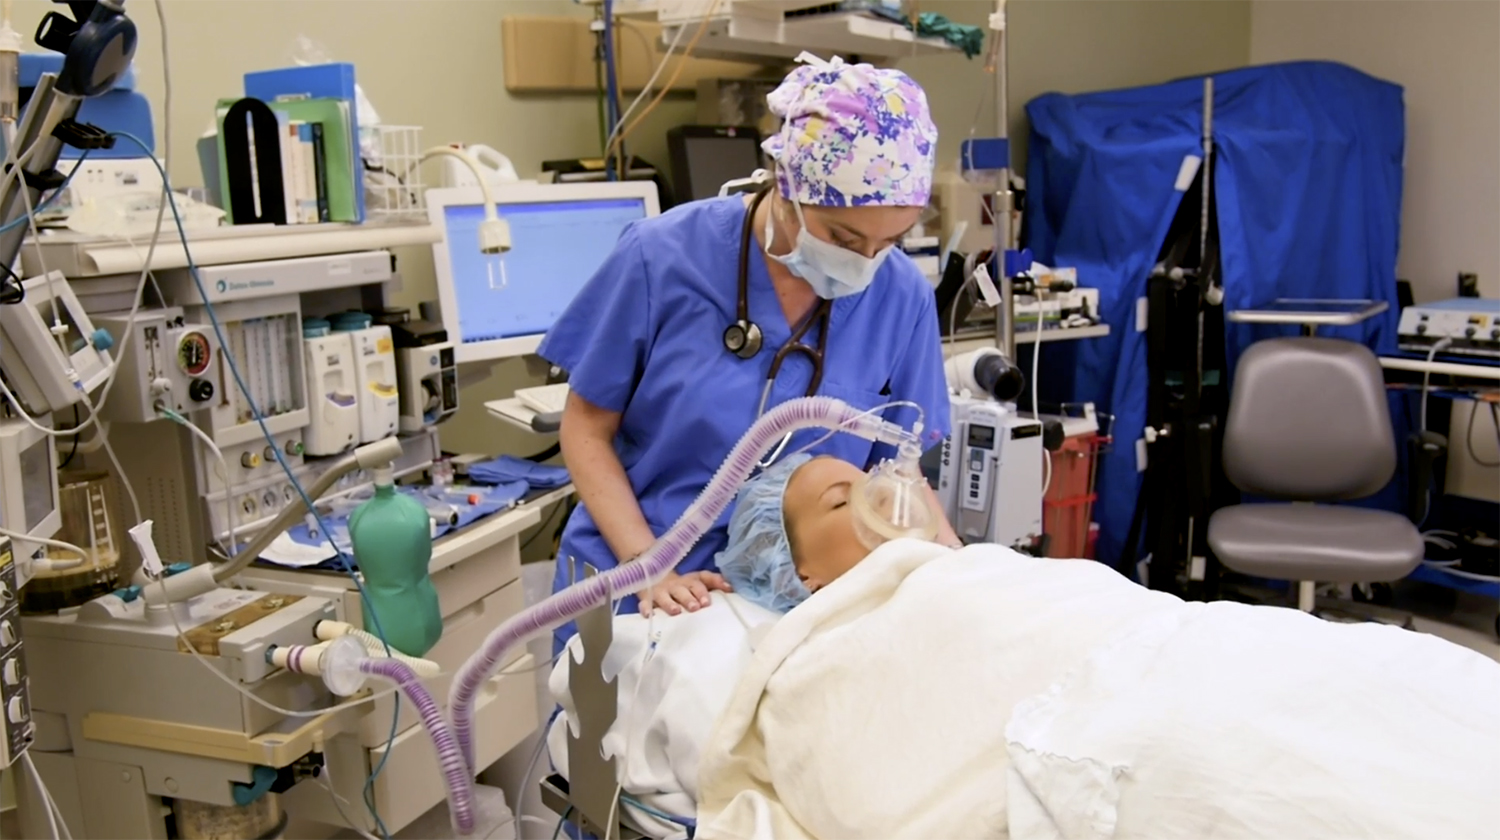 Anesthesa being applied to patient